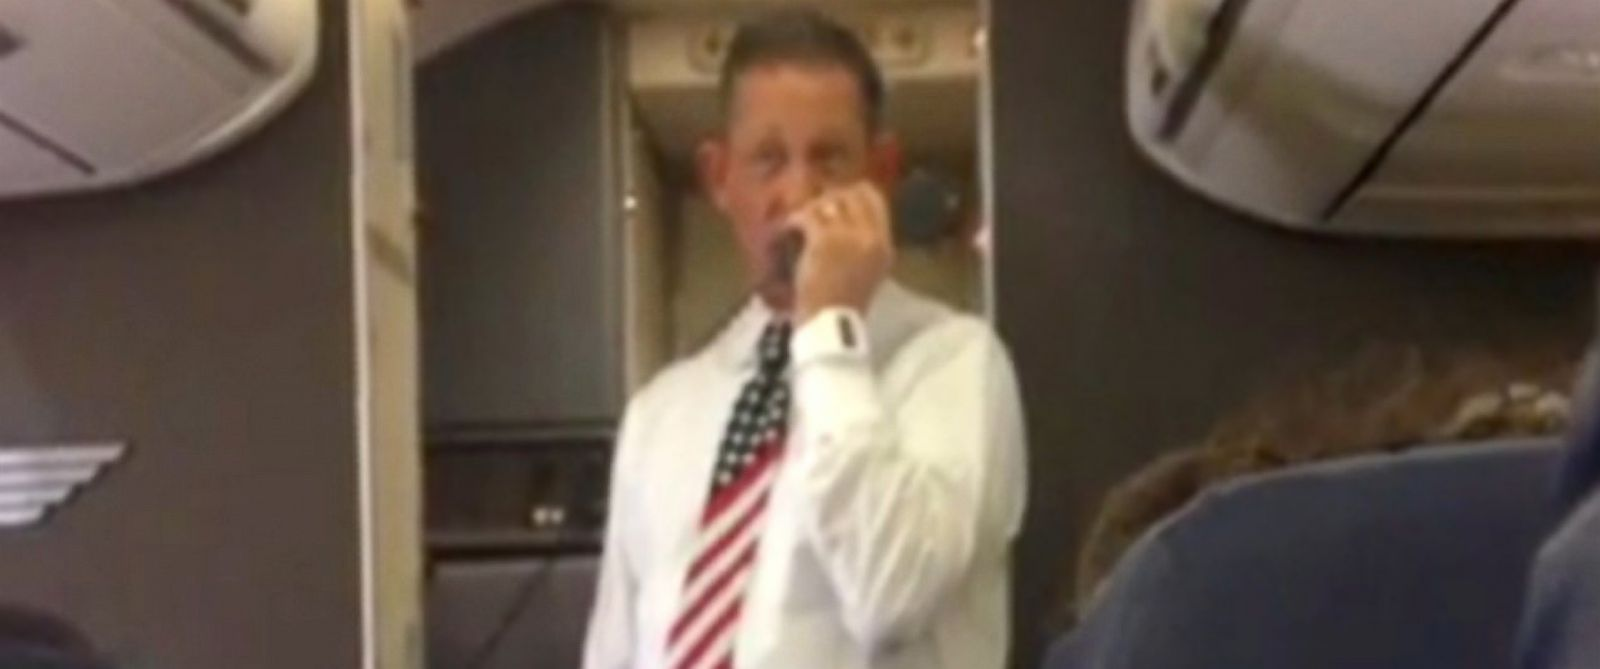 PHOTO: A flight attendant gives a hilarious safety speech.